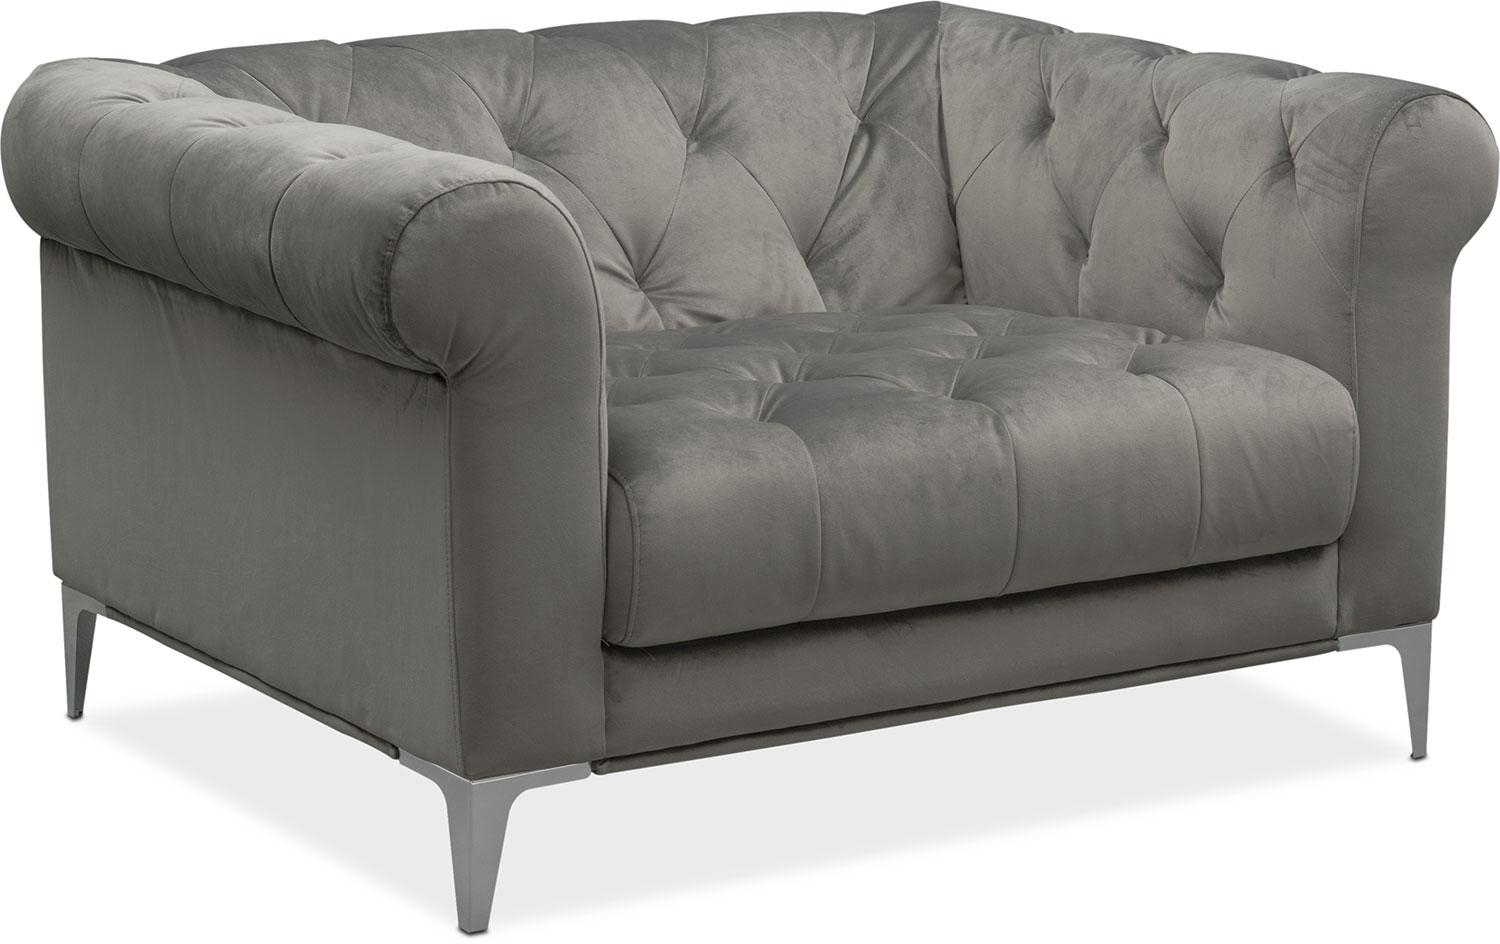 David Sofa And Two Cuddler Chairs Set – Flannel | Value City Furniture Throughout Sofa Chairs (Image 6 of 20)